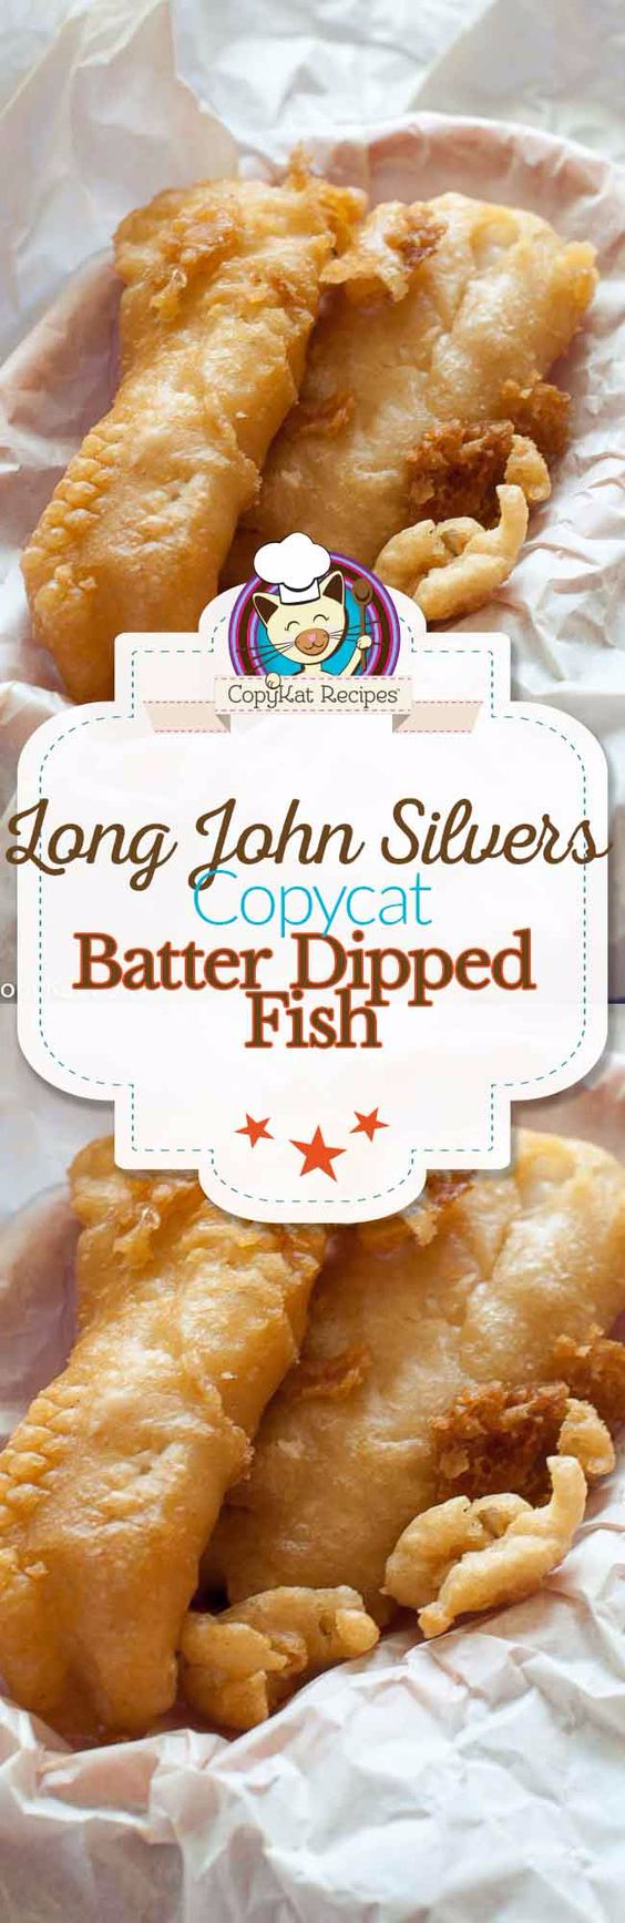 Best Copycat Recipes From Top Restaurants - Long John Silver's Copycat Batter Dipped Fish - Awesome Recipe Knockoffs and Recipe Ideas from Chipotle Restaurant, Starbucks, Olive Garden, Cinabbon, Cracker Barrel, Taco Bell, Cheesecake Factory, KFC, Mc Donalds, Red Lobster, Panda Express #recipes #copycat #dinnerideas